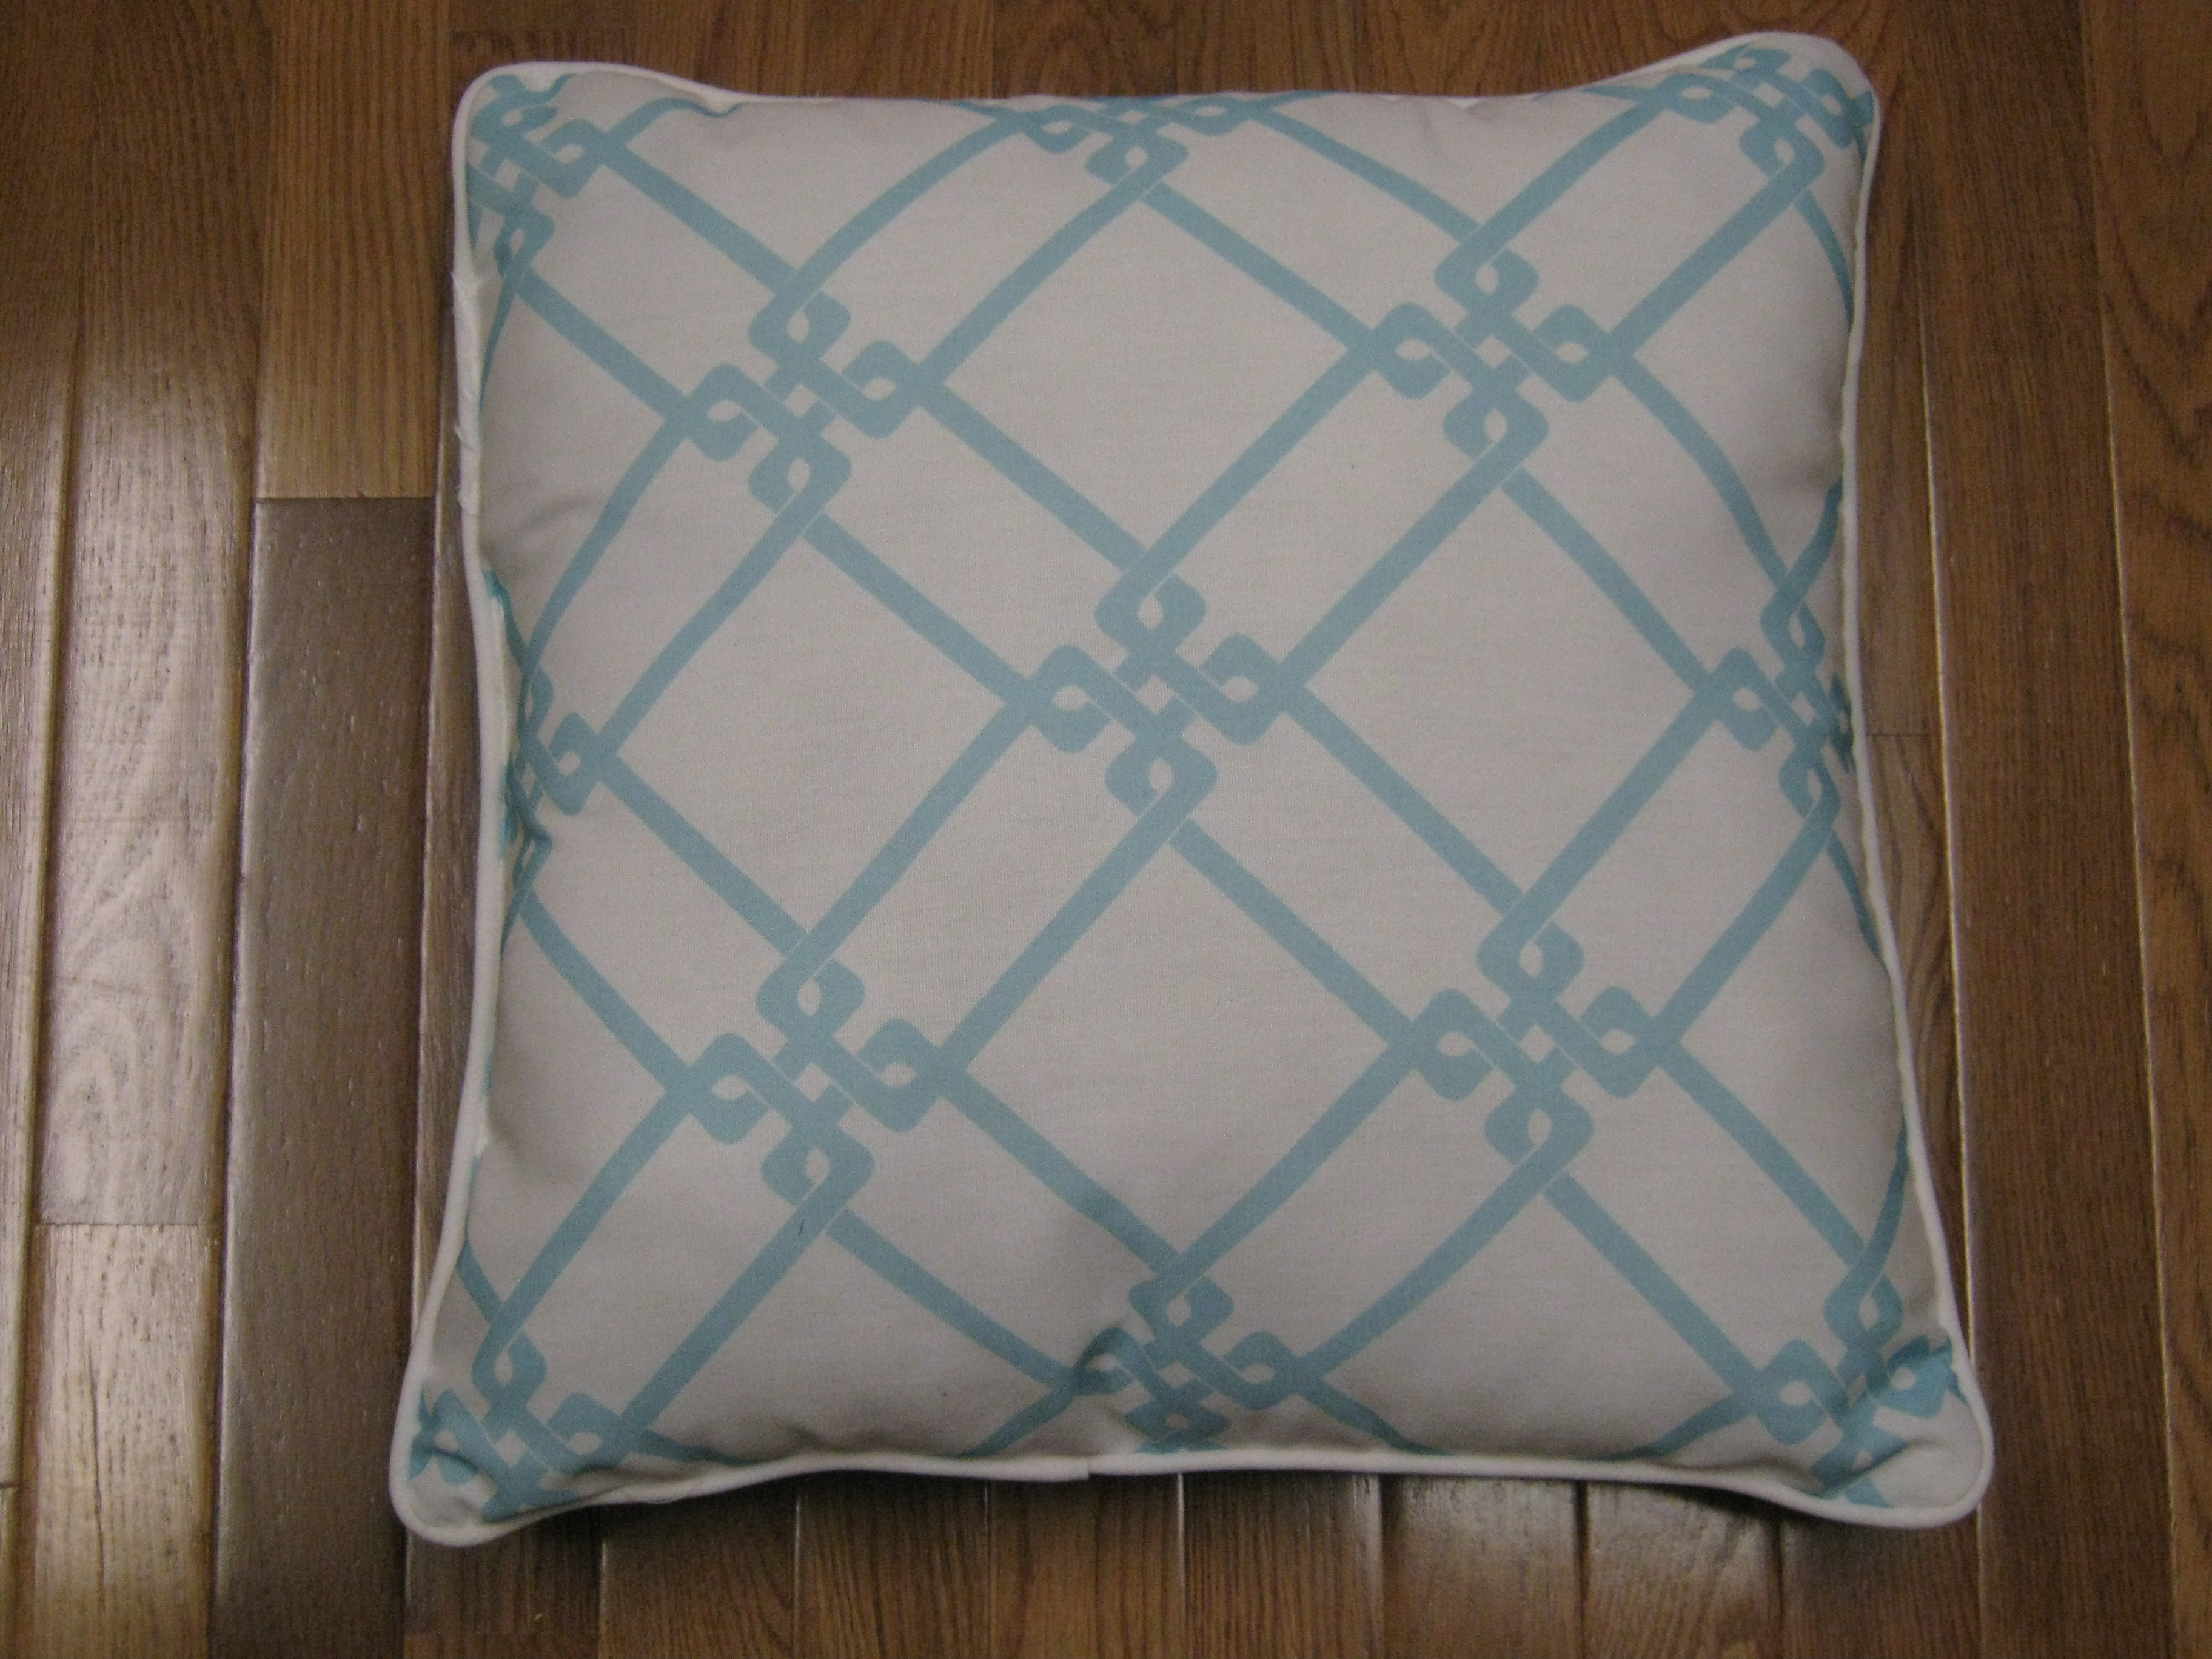 Make Removable Throw Pillow Covers : How To Make No Sew Removable Pillow Covers - Finding Silver Linings